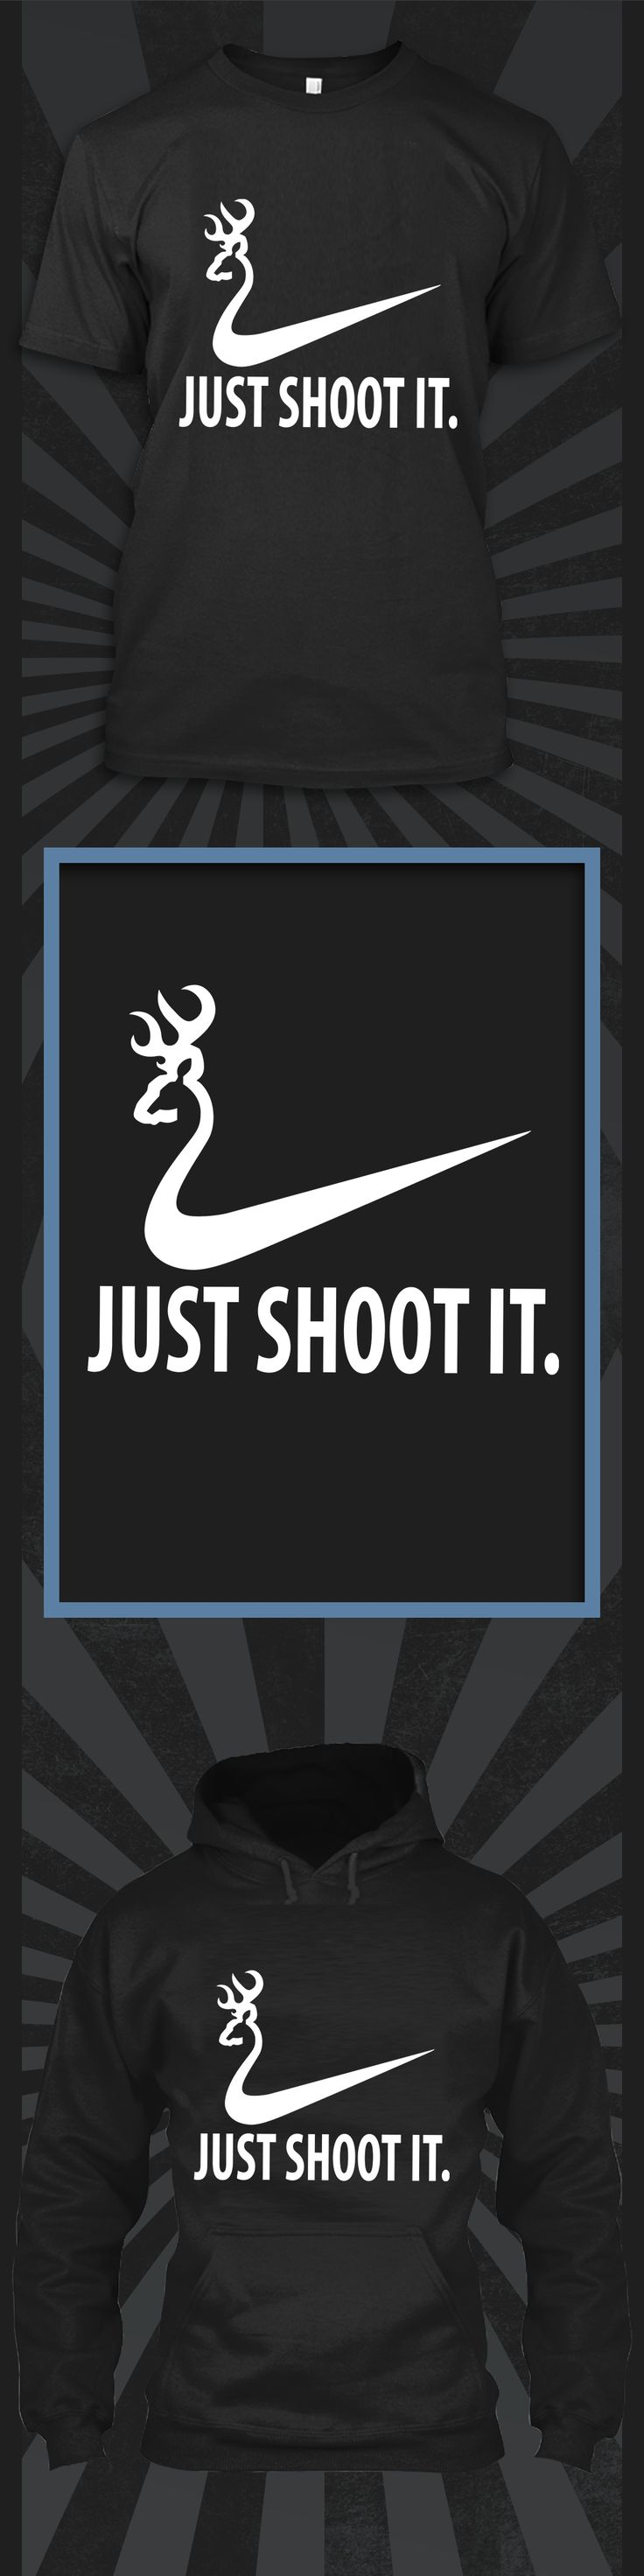 Just Shoot it - Limited edition. Order 2 or more for friends/family & save on shipping! Makes a great gift!